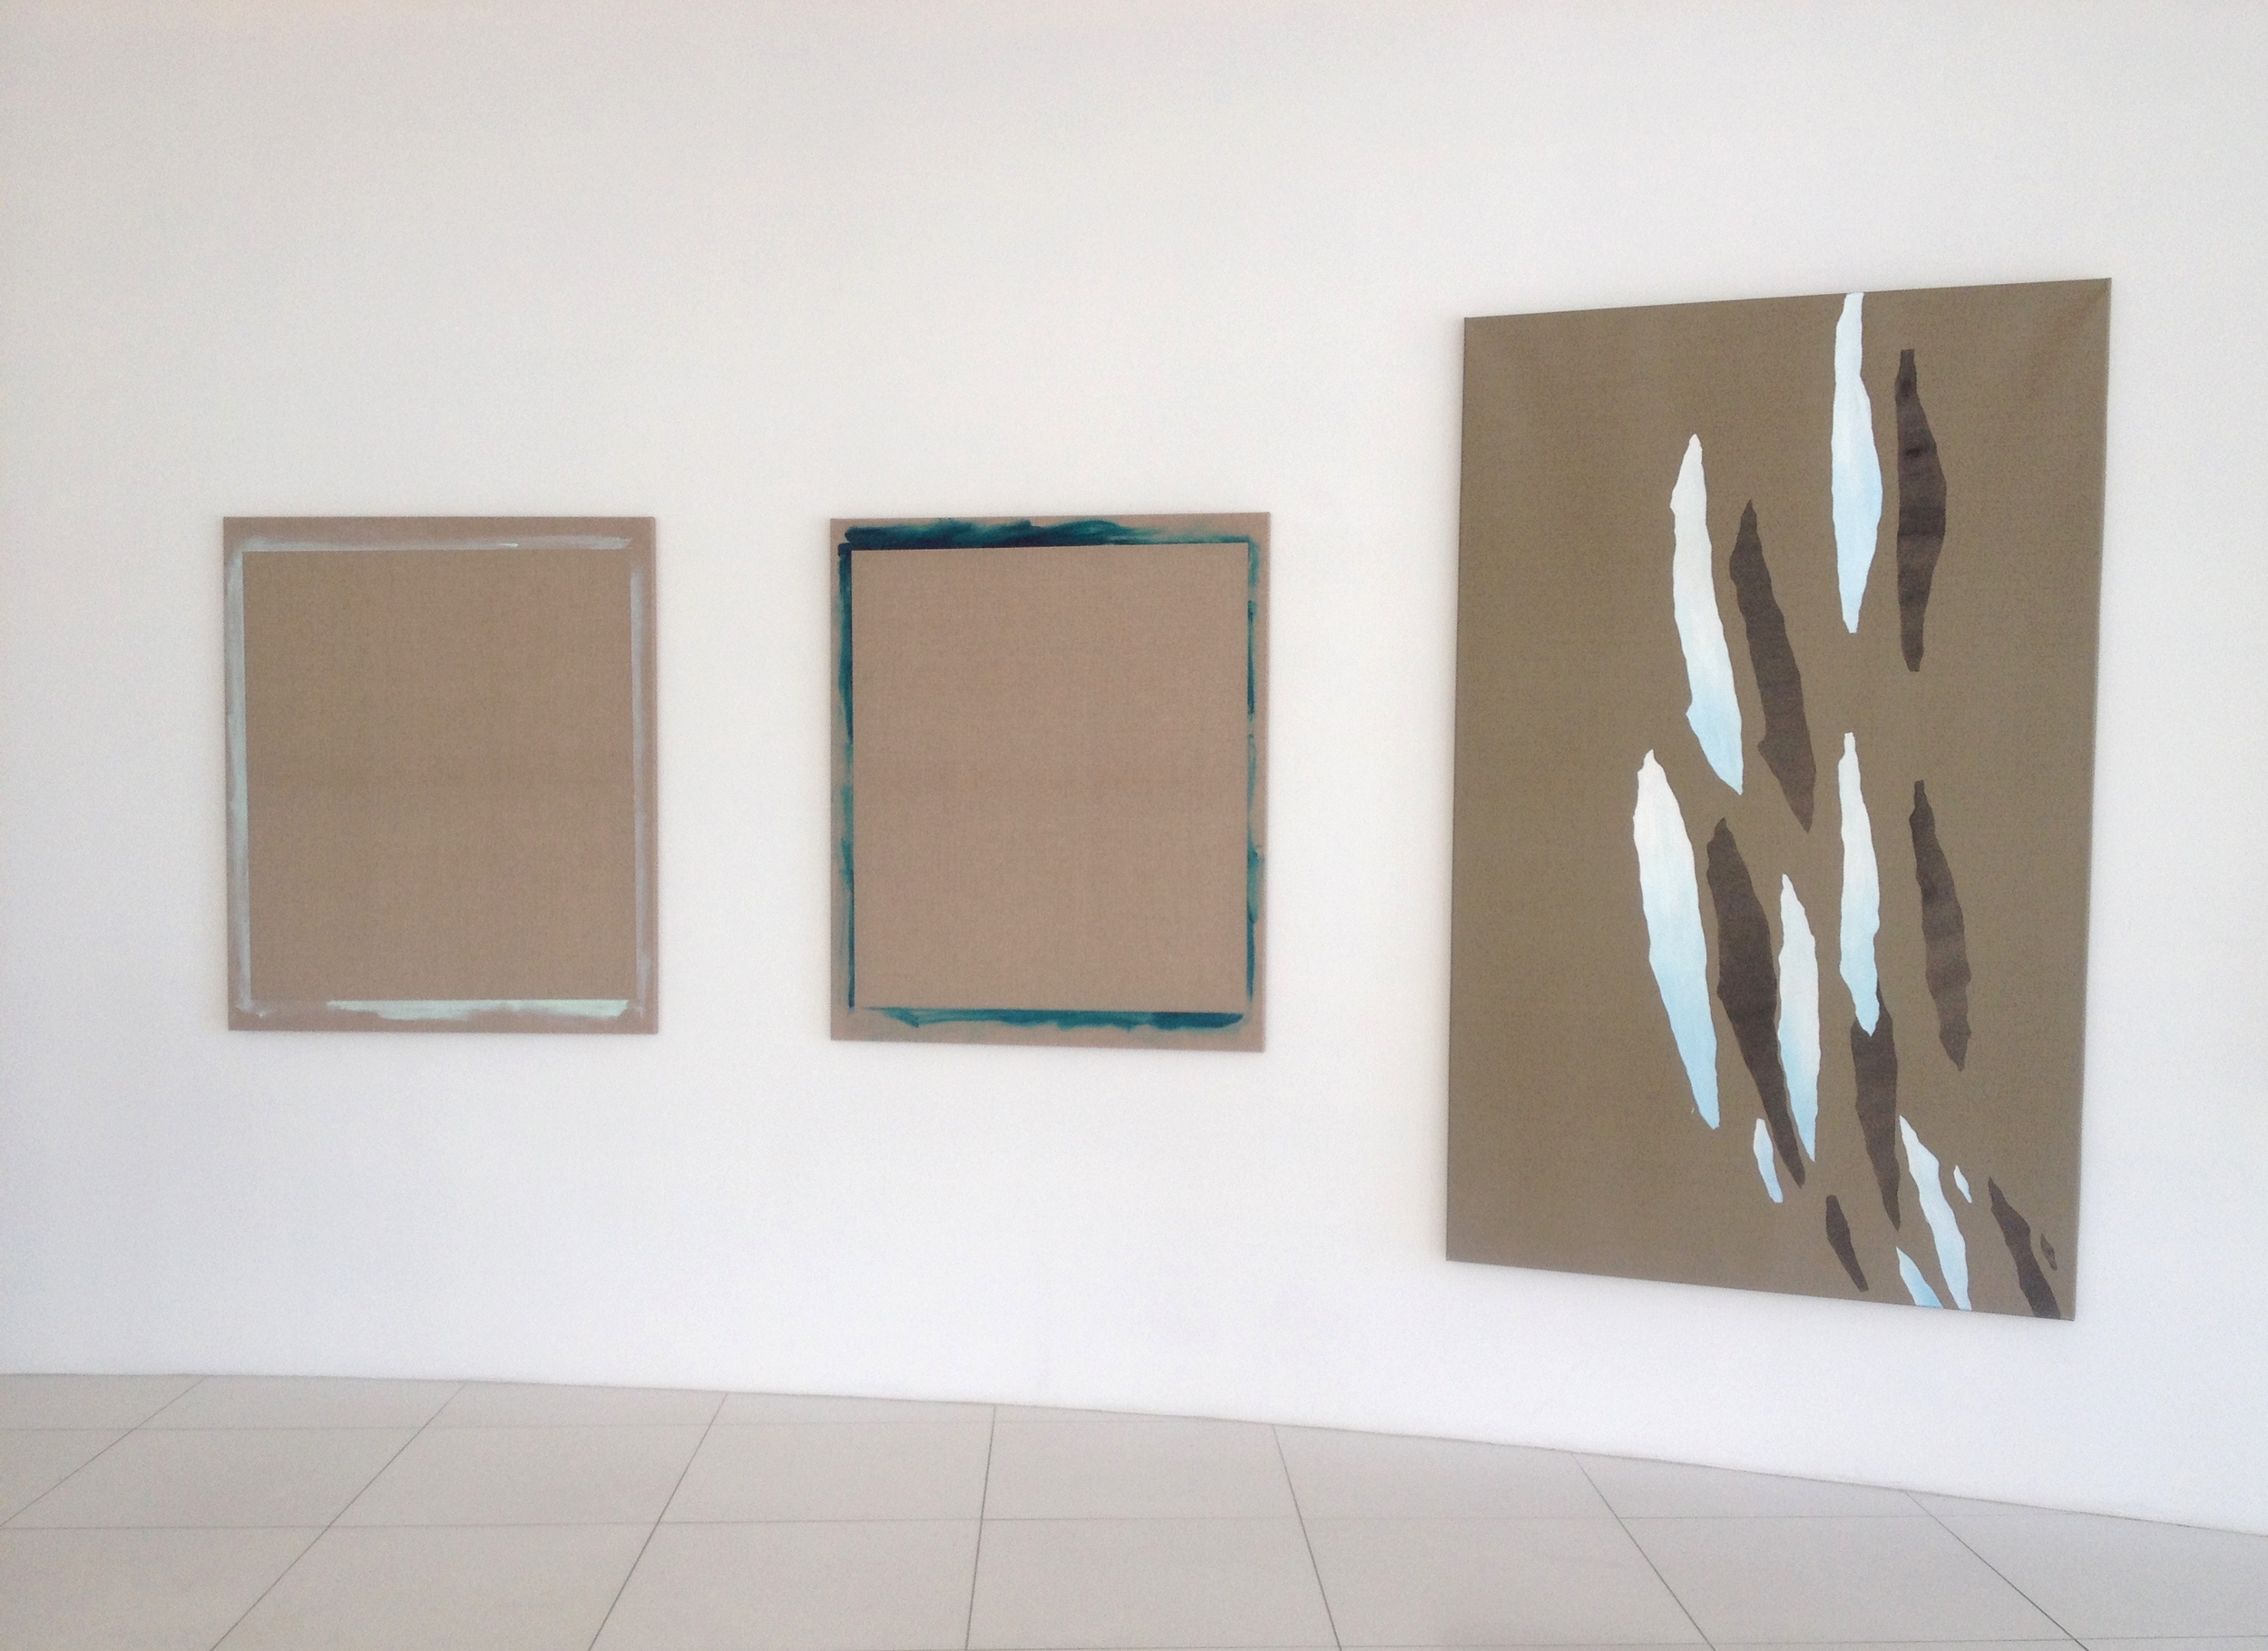 Group show, 2015